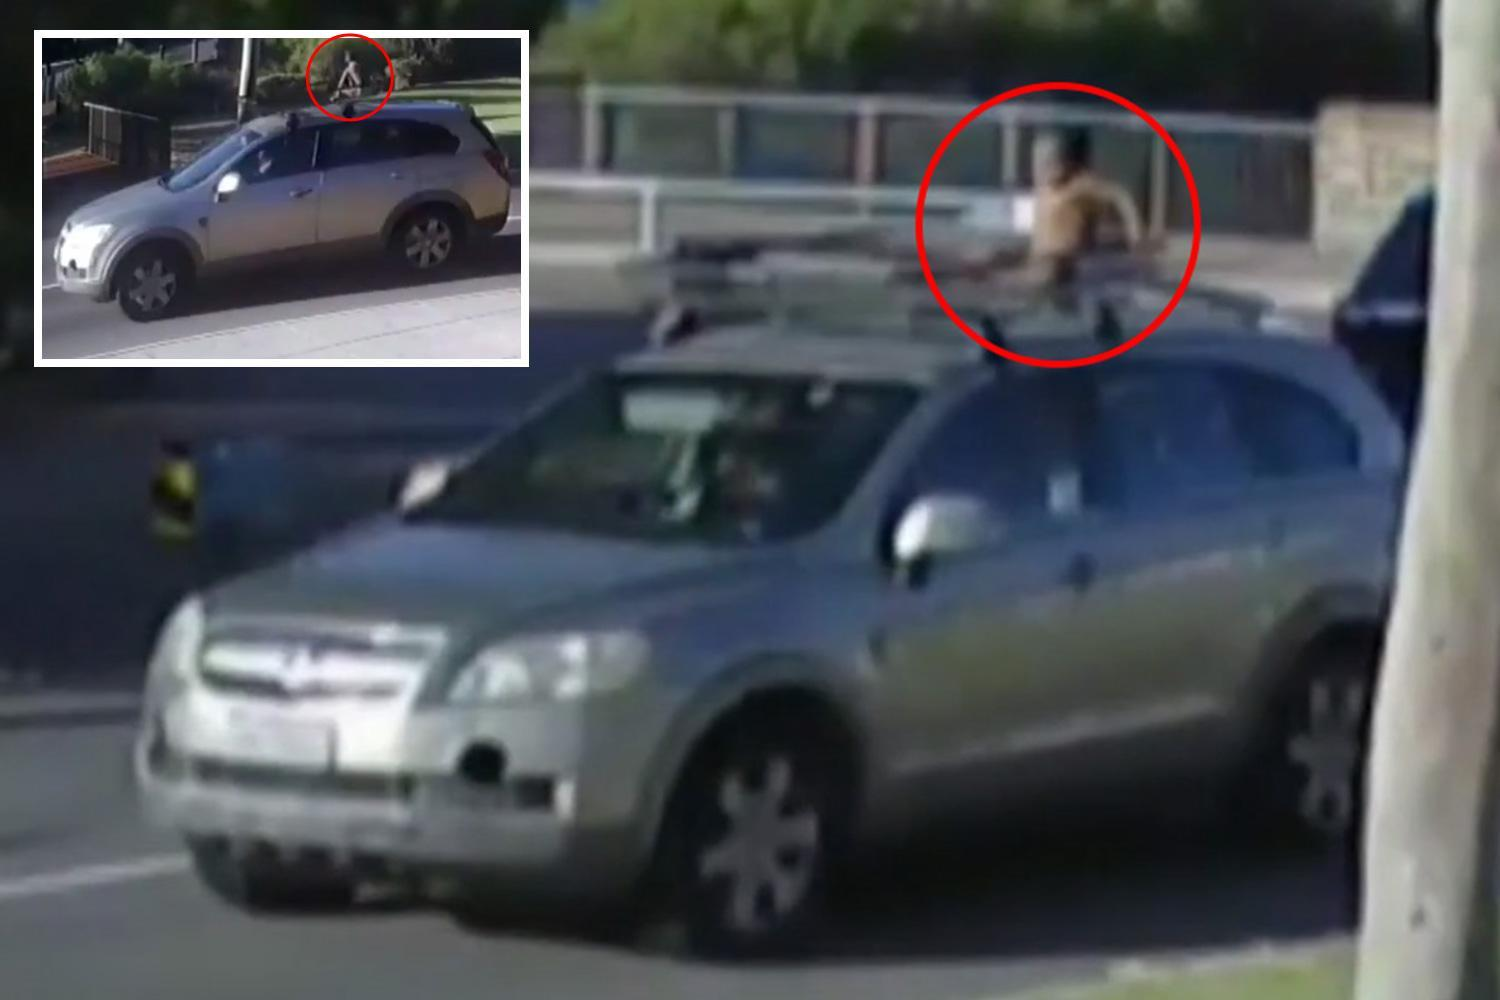 Baby in nappy filmed riding on ROOF of car while mum drove completely unaware